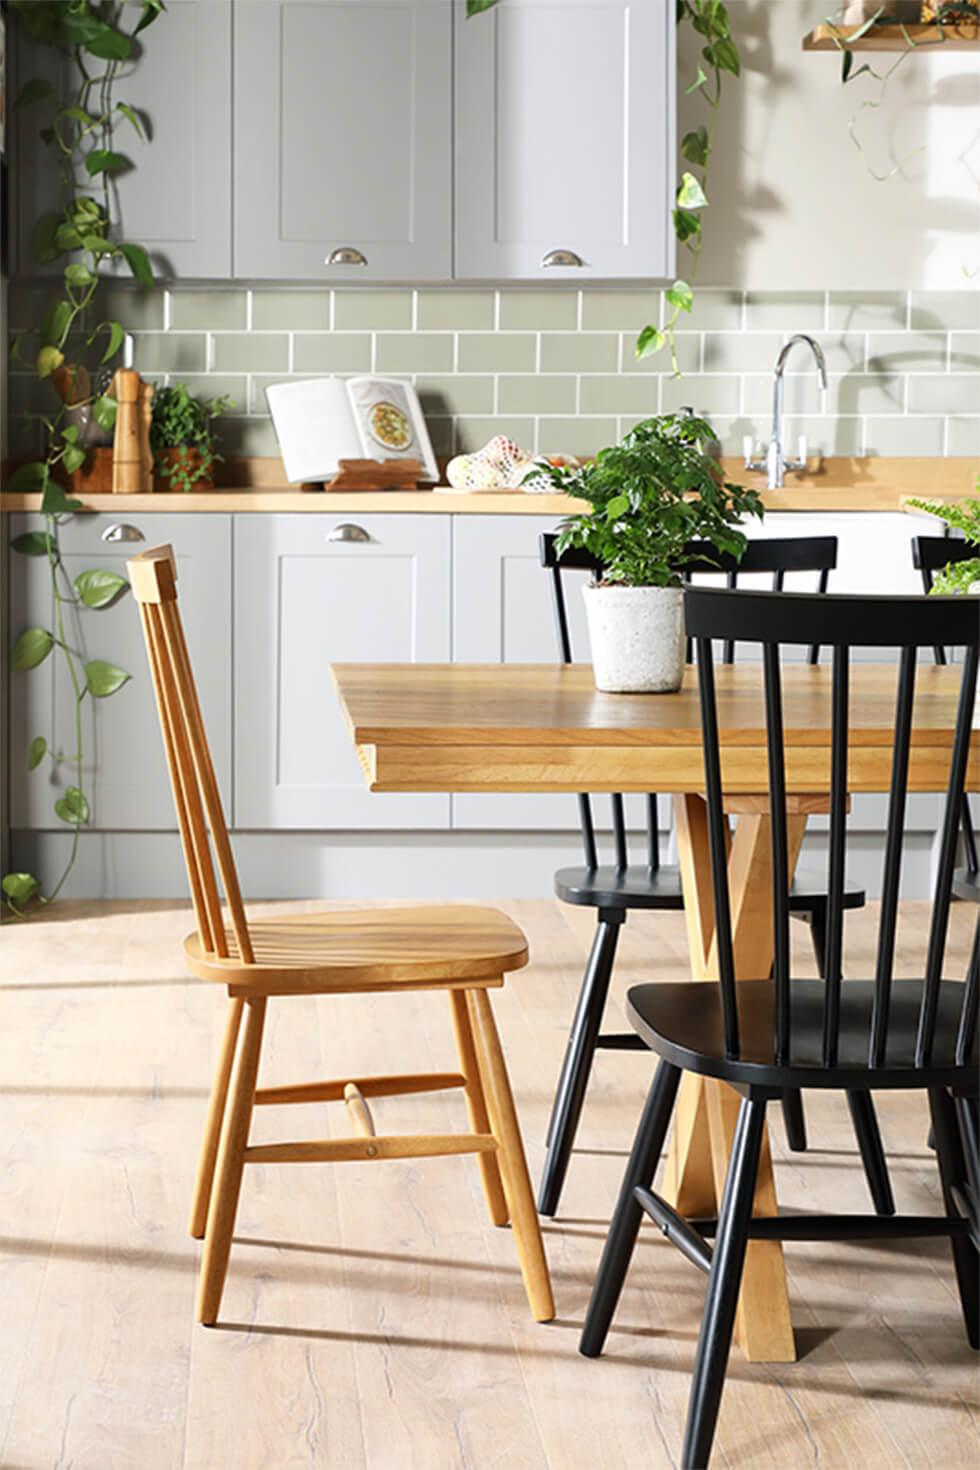 Mismatched chairs and an oak dining table in a contemporary kitchen